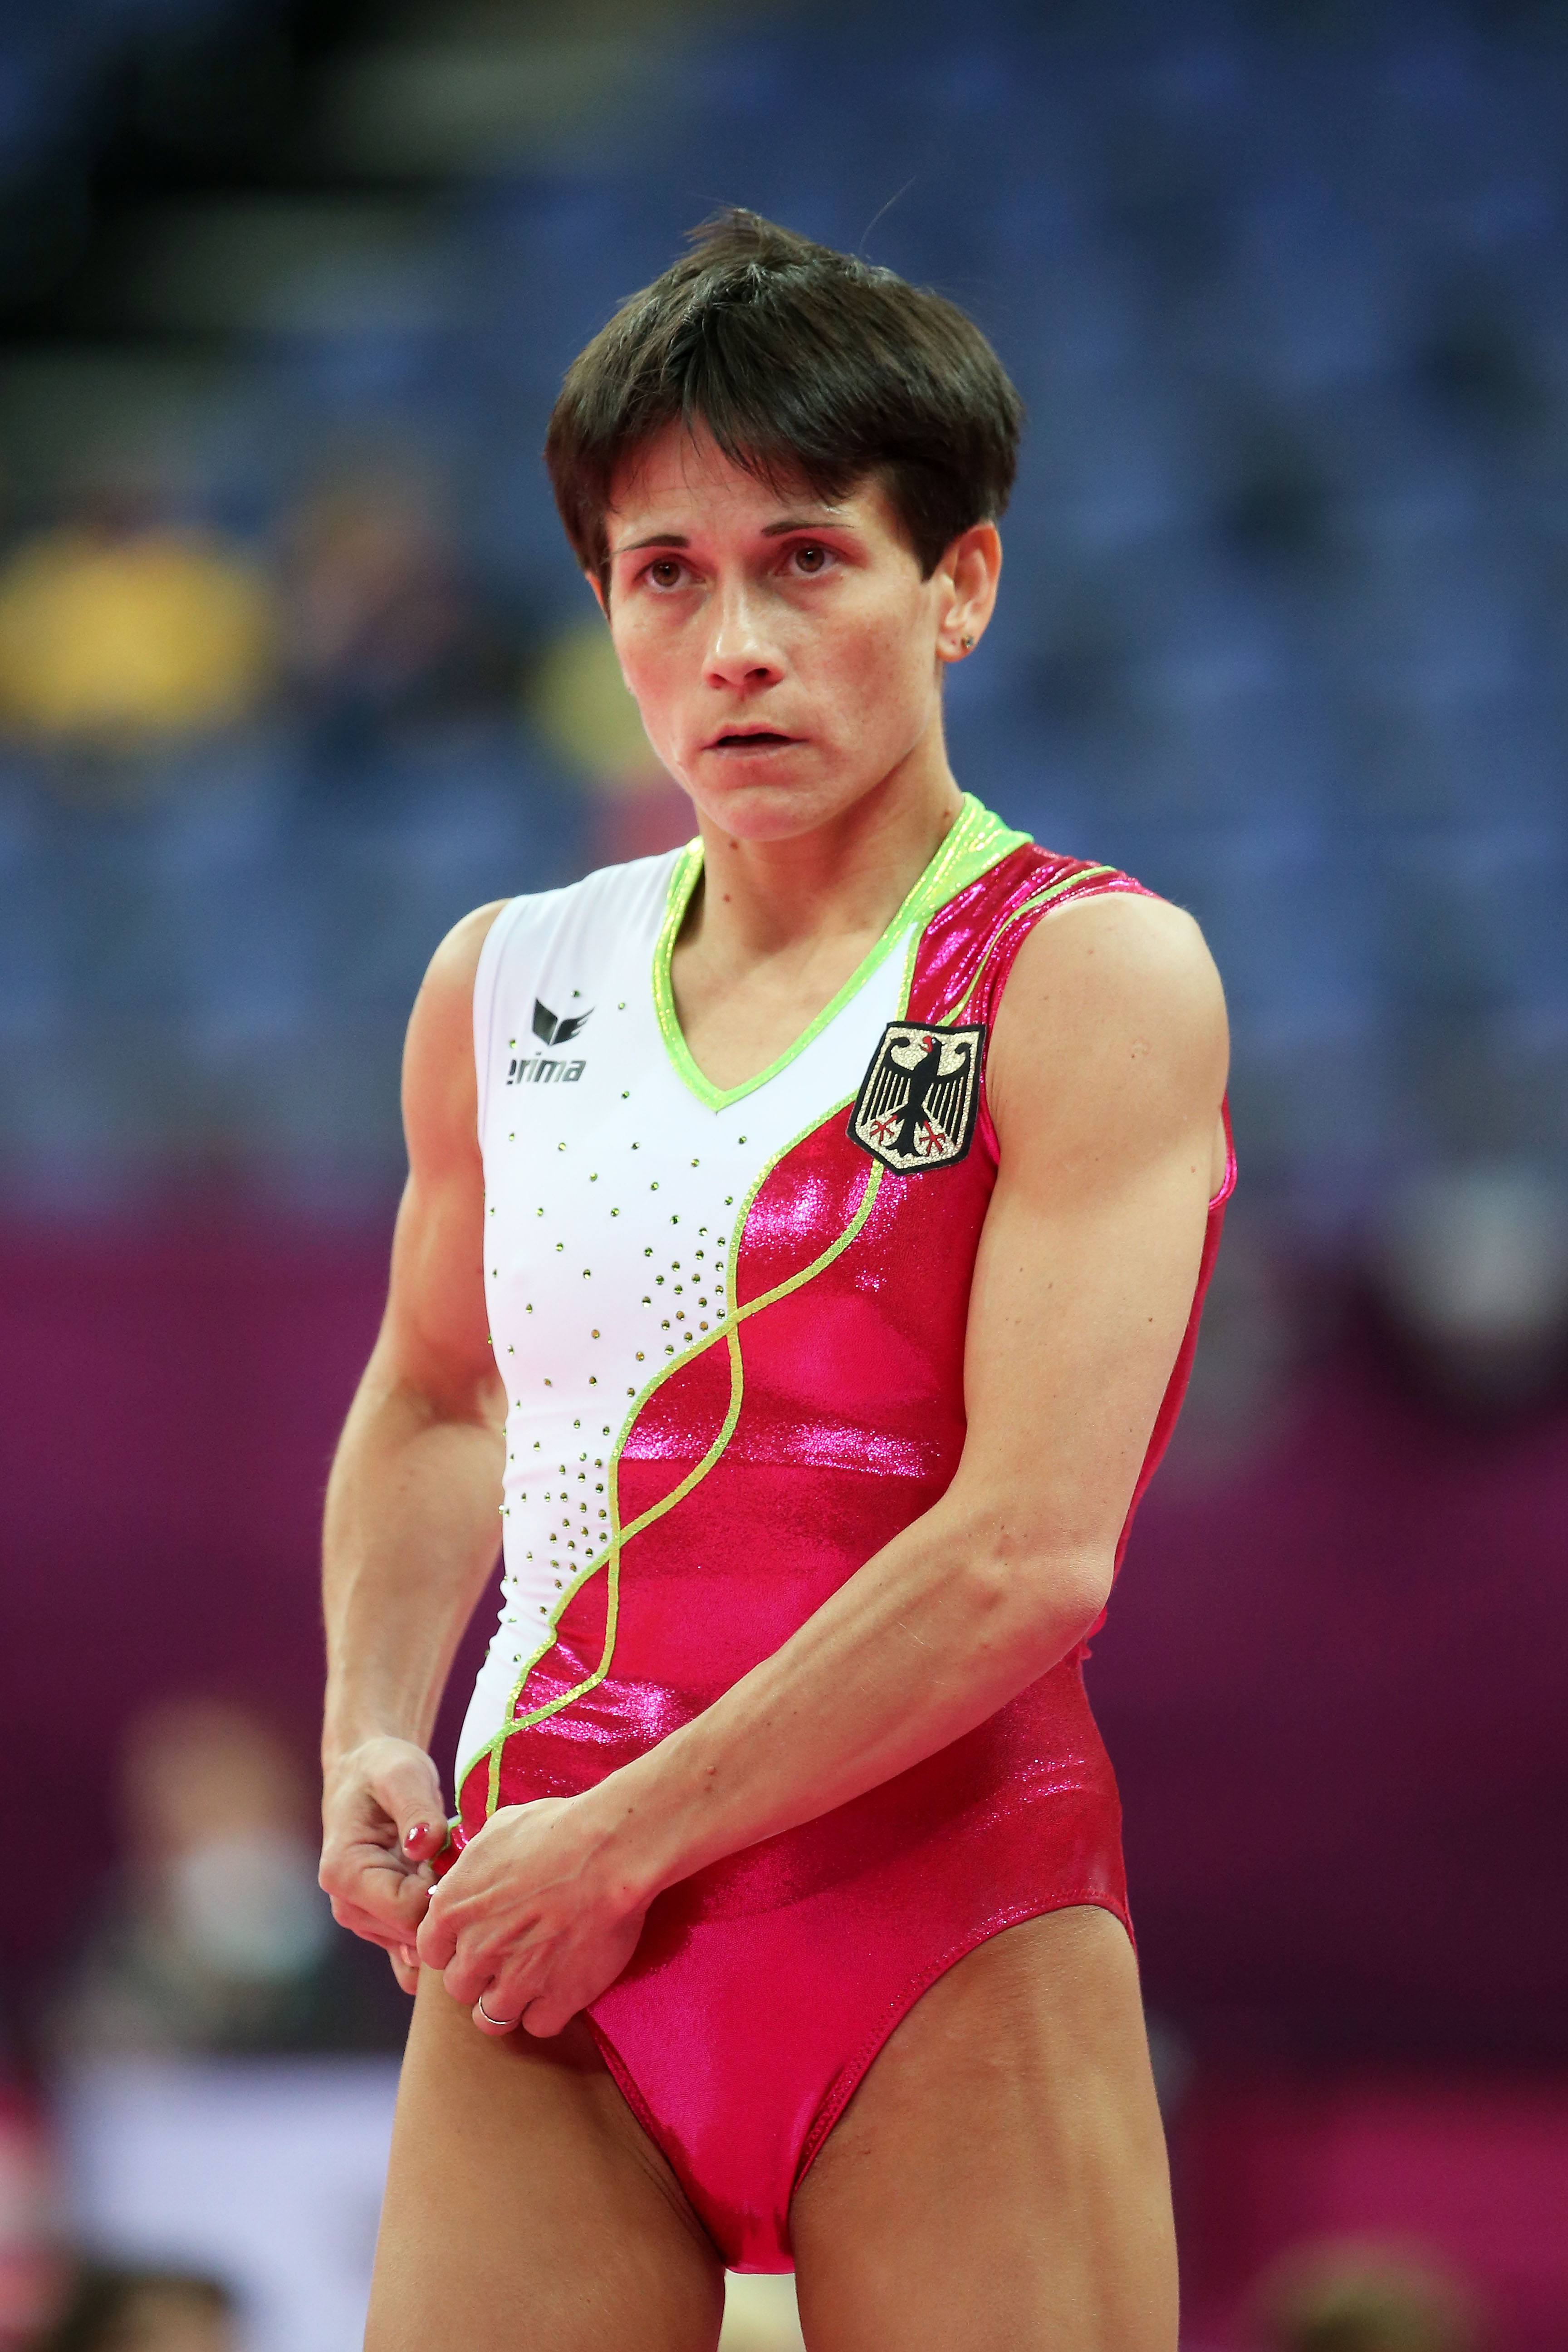 LONDON, ENGLAND - JULY 26:  Oksana Chusovitina of Germany looks on during training sessions for Artistic Gymnastics ahead of the 2012 Olympic Games at Greenwich Training Academy on July 26, 2012 in London, England.  (Photo by Christian Petersen/Getty Images)